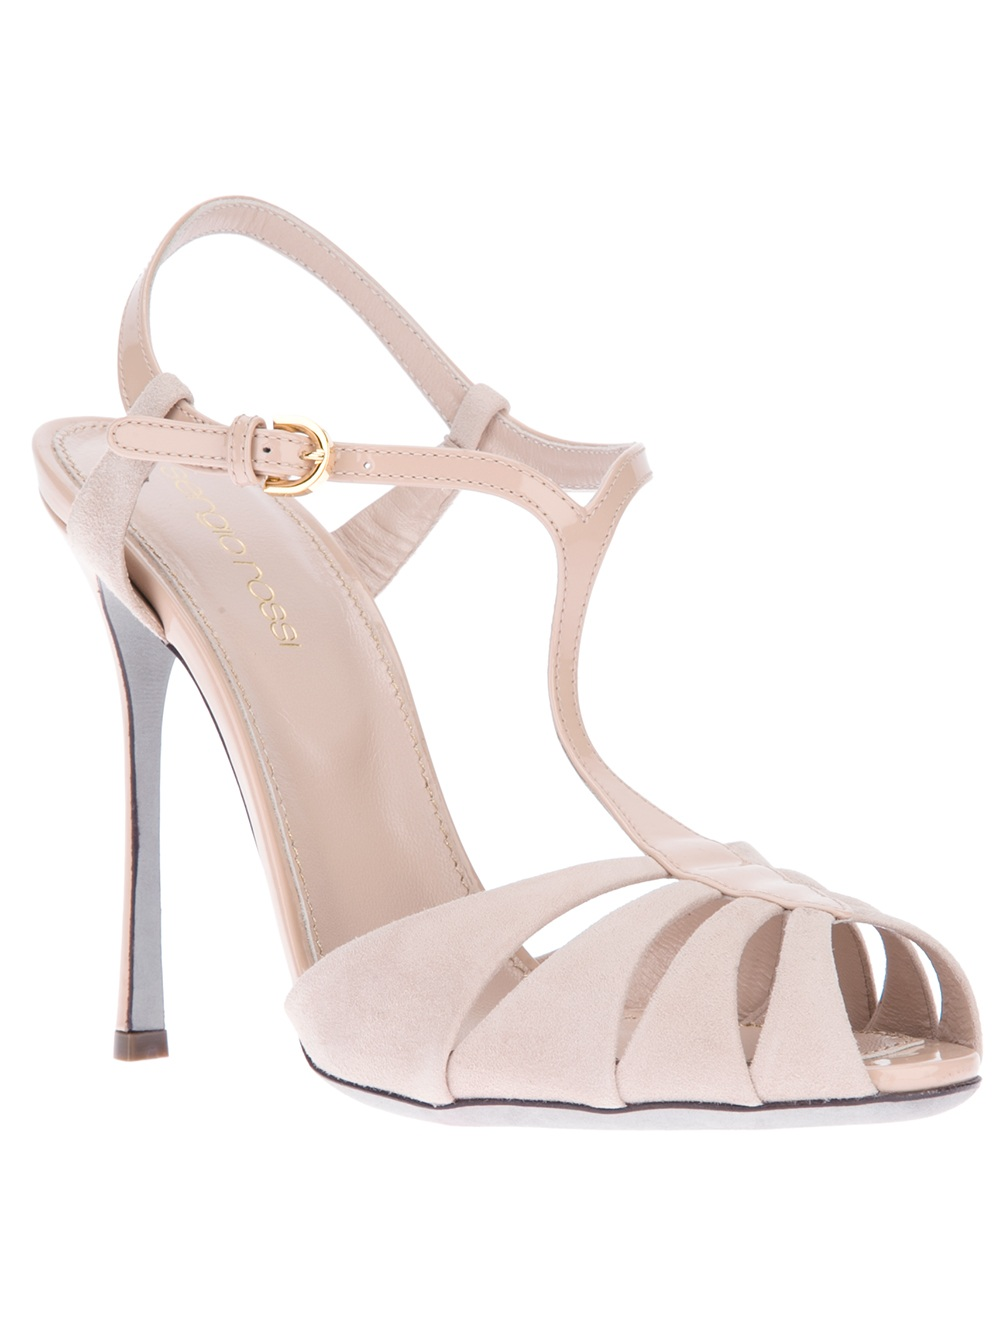 Sergio rossi T Bar Sandal in Pink   Lyst